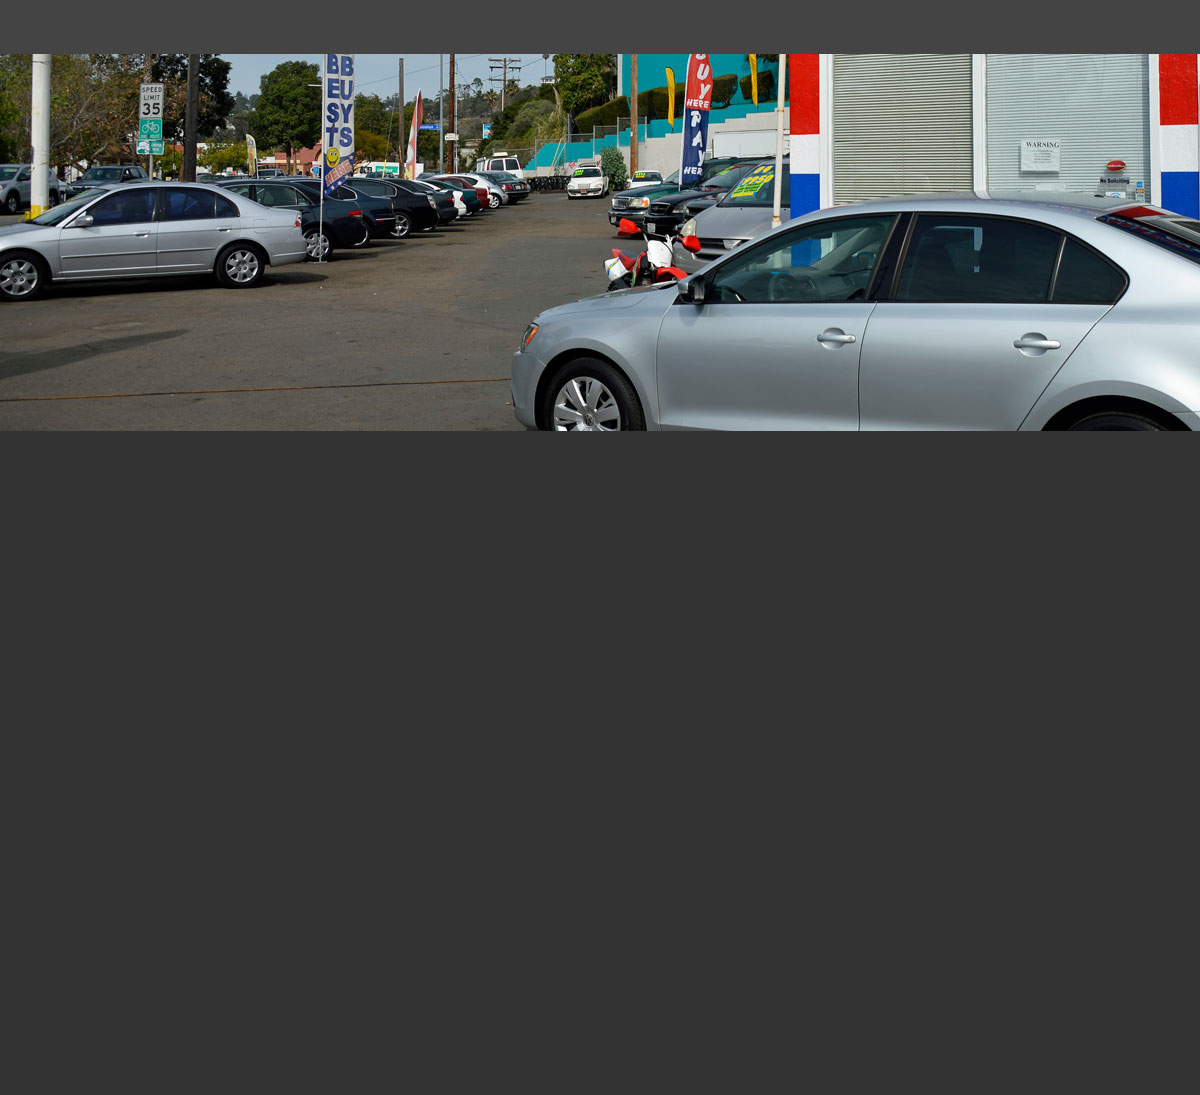 carfinder on acq sale volkswagen in or en ca copart lot title of cert black san auto view diego online auctions beetle left new salvage